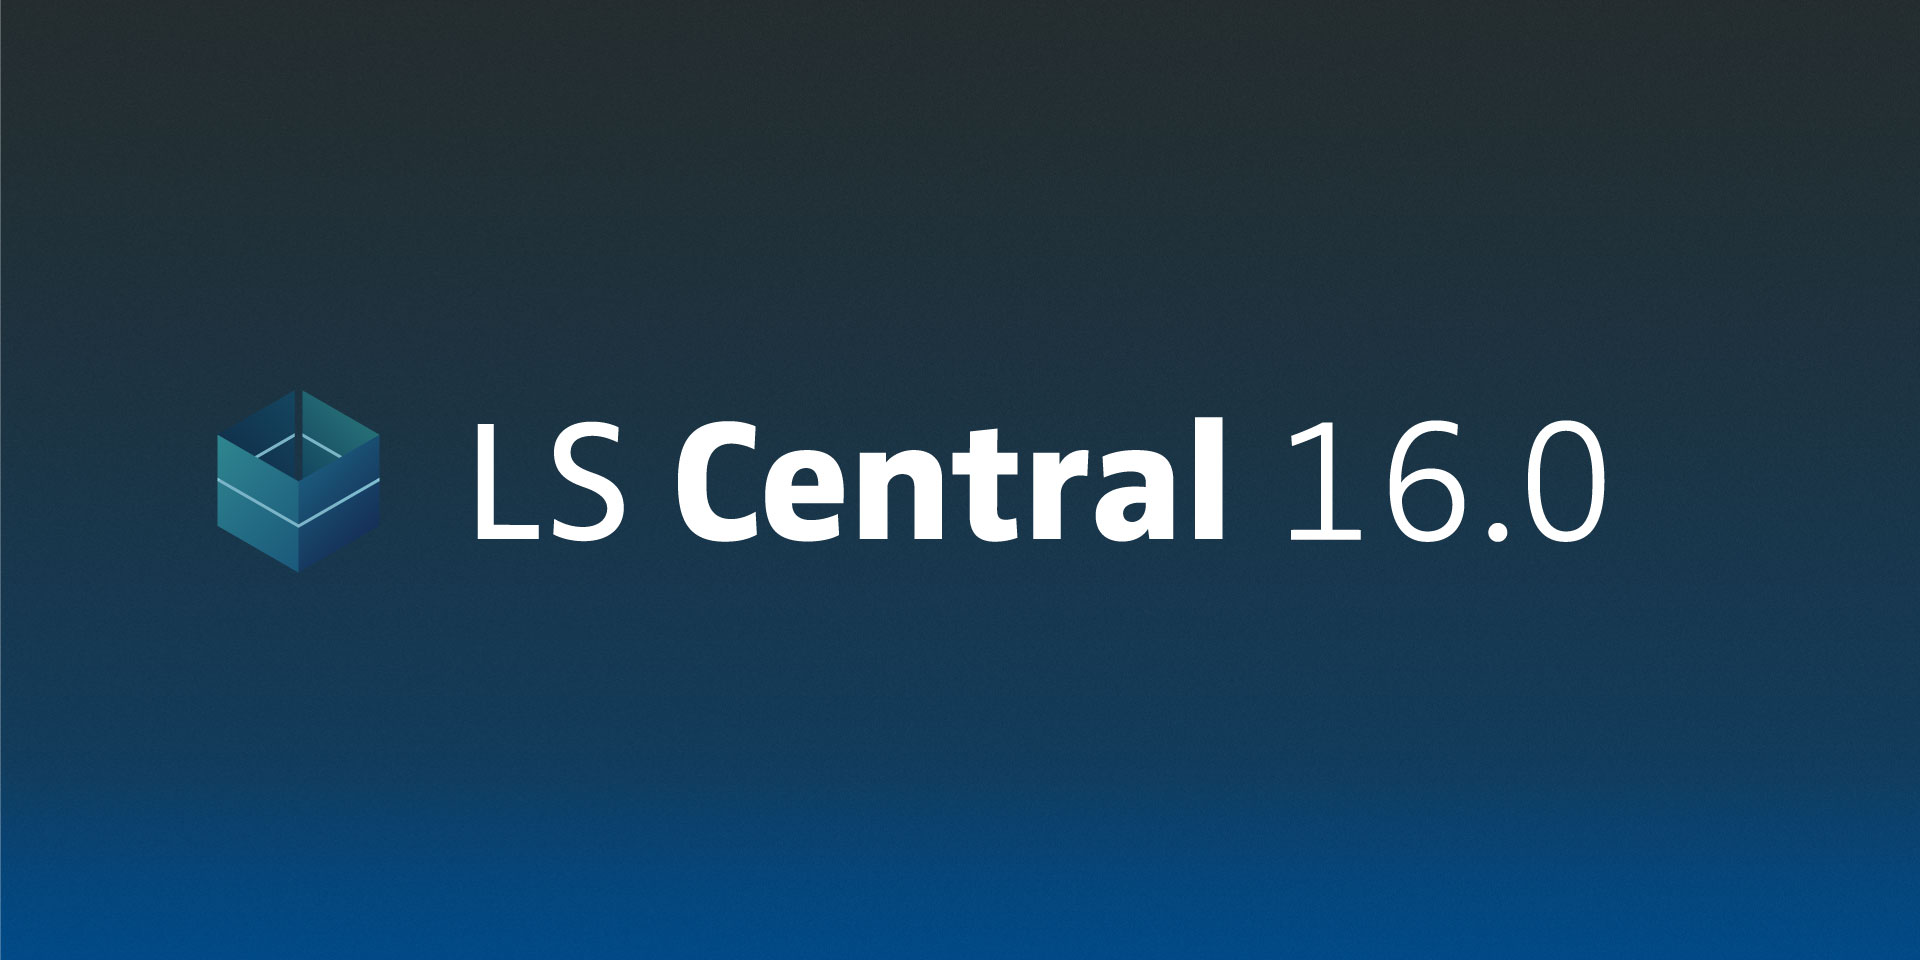 LS Central 16.0: official release of LS Forecast, new LS Central AppShell for Windows